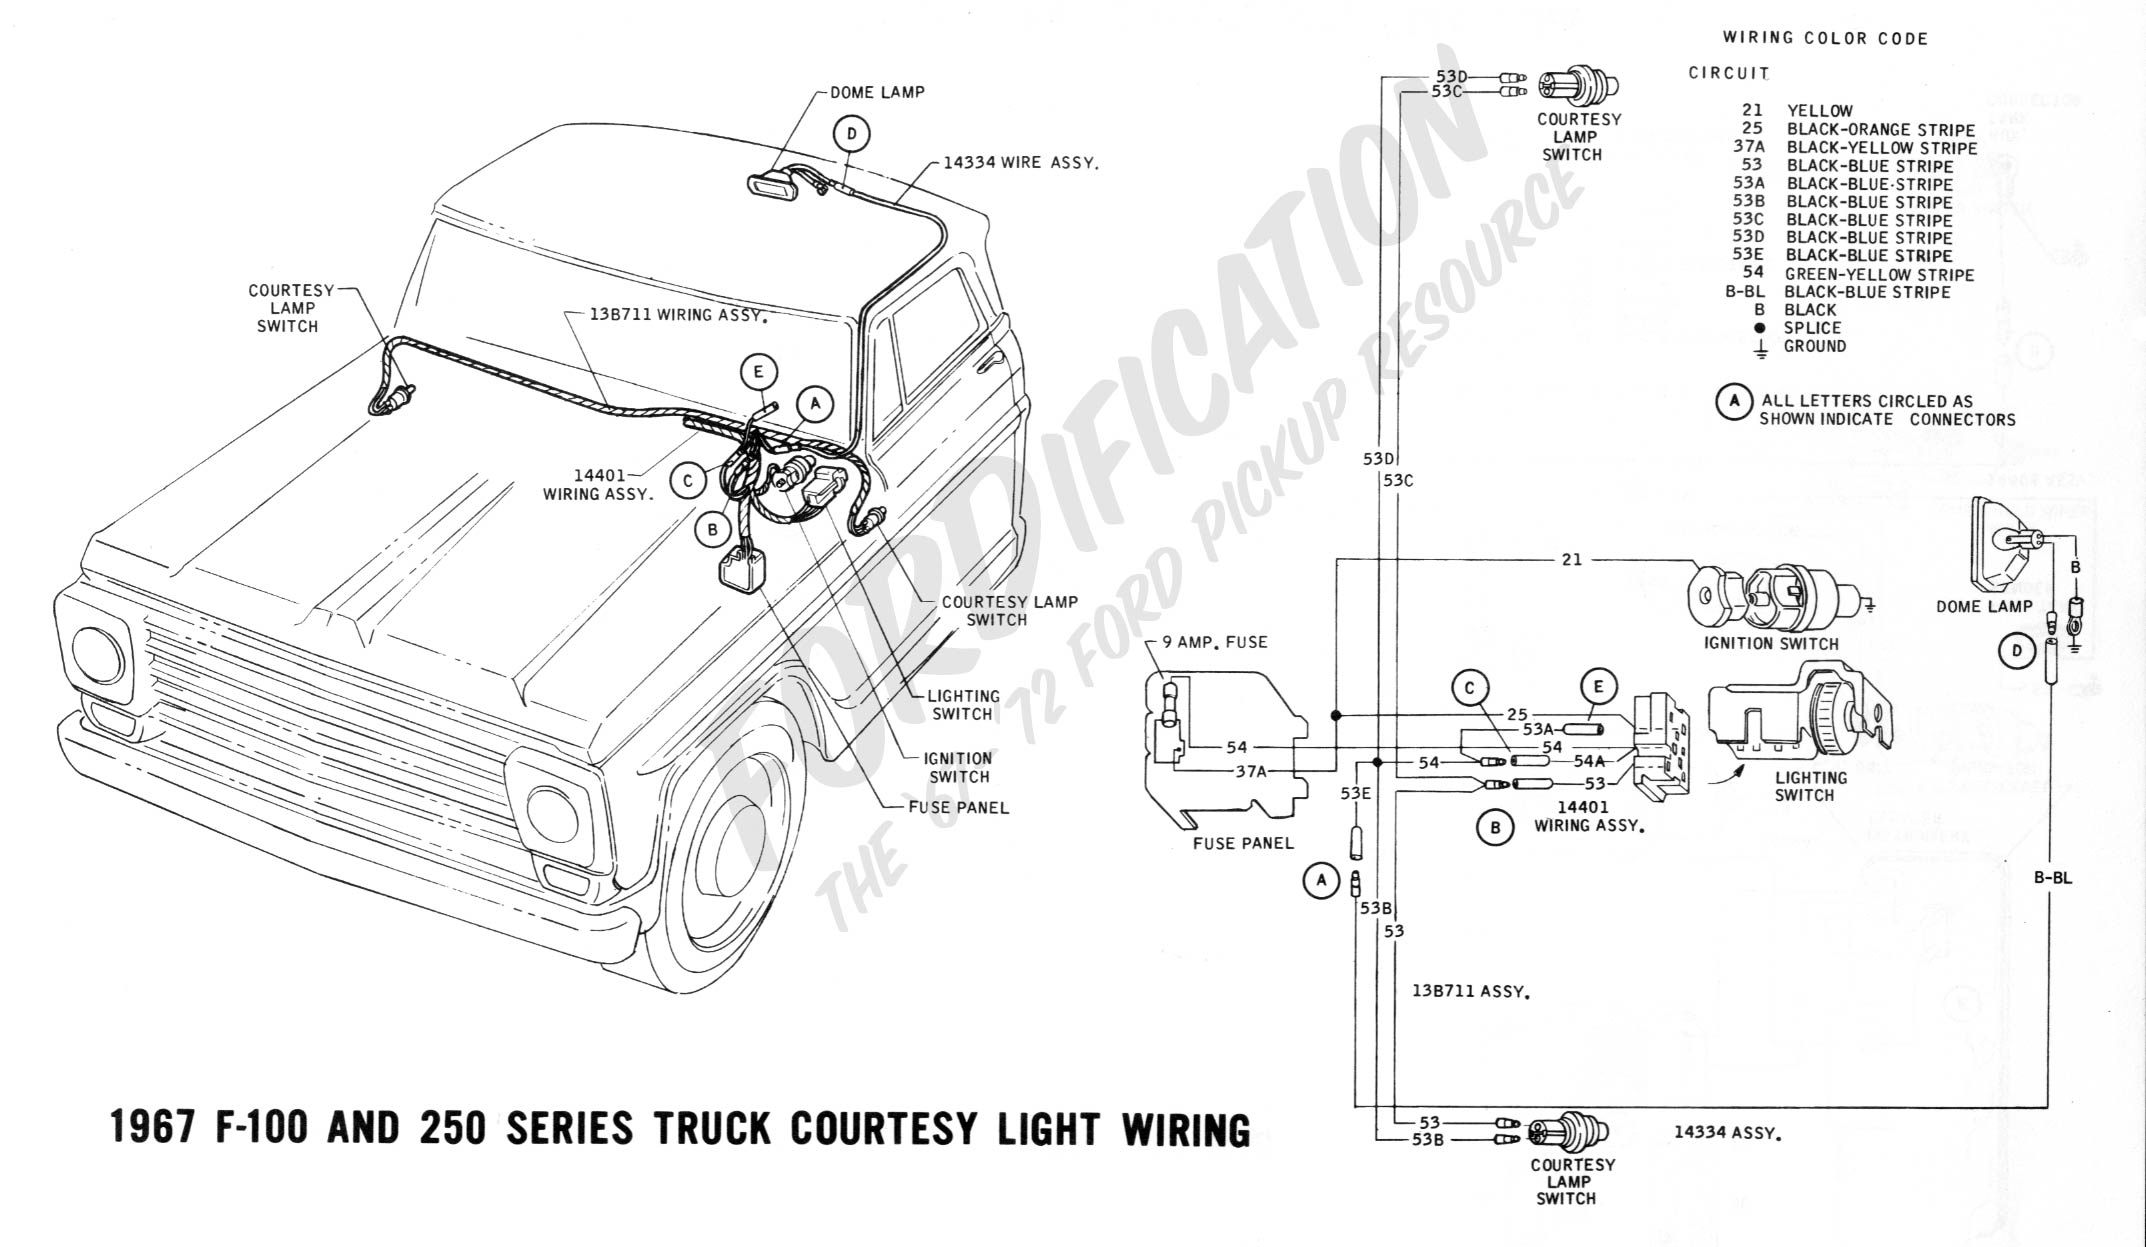 wiring 1967courtesylight wiring in ignition switch in 1966 f100 ford truck enthusiasts forums 1966 ford truck wiring diagram at aneh.co